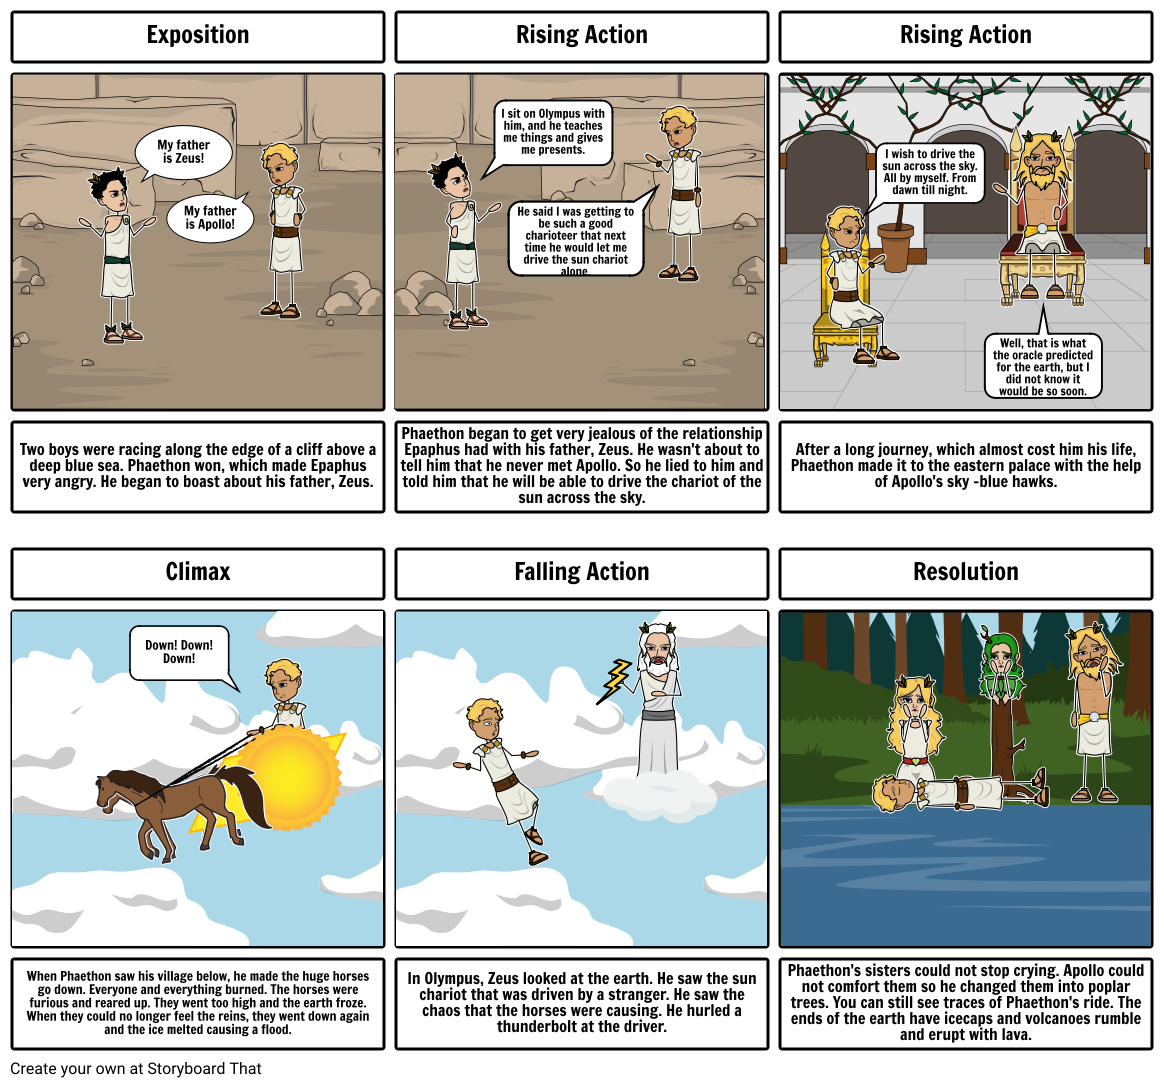 Exposition my father is zeus my father is apollo rising action i exposition my father is zeus my father is apollo rising action i sit on plot diagramolympusapollospringboardstoryboardpresentsfatherwebsiteaction ccuart Image collections